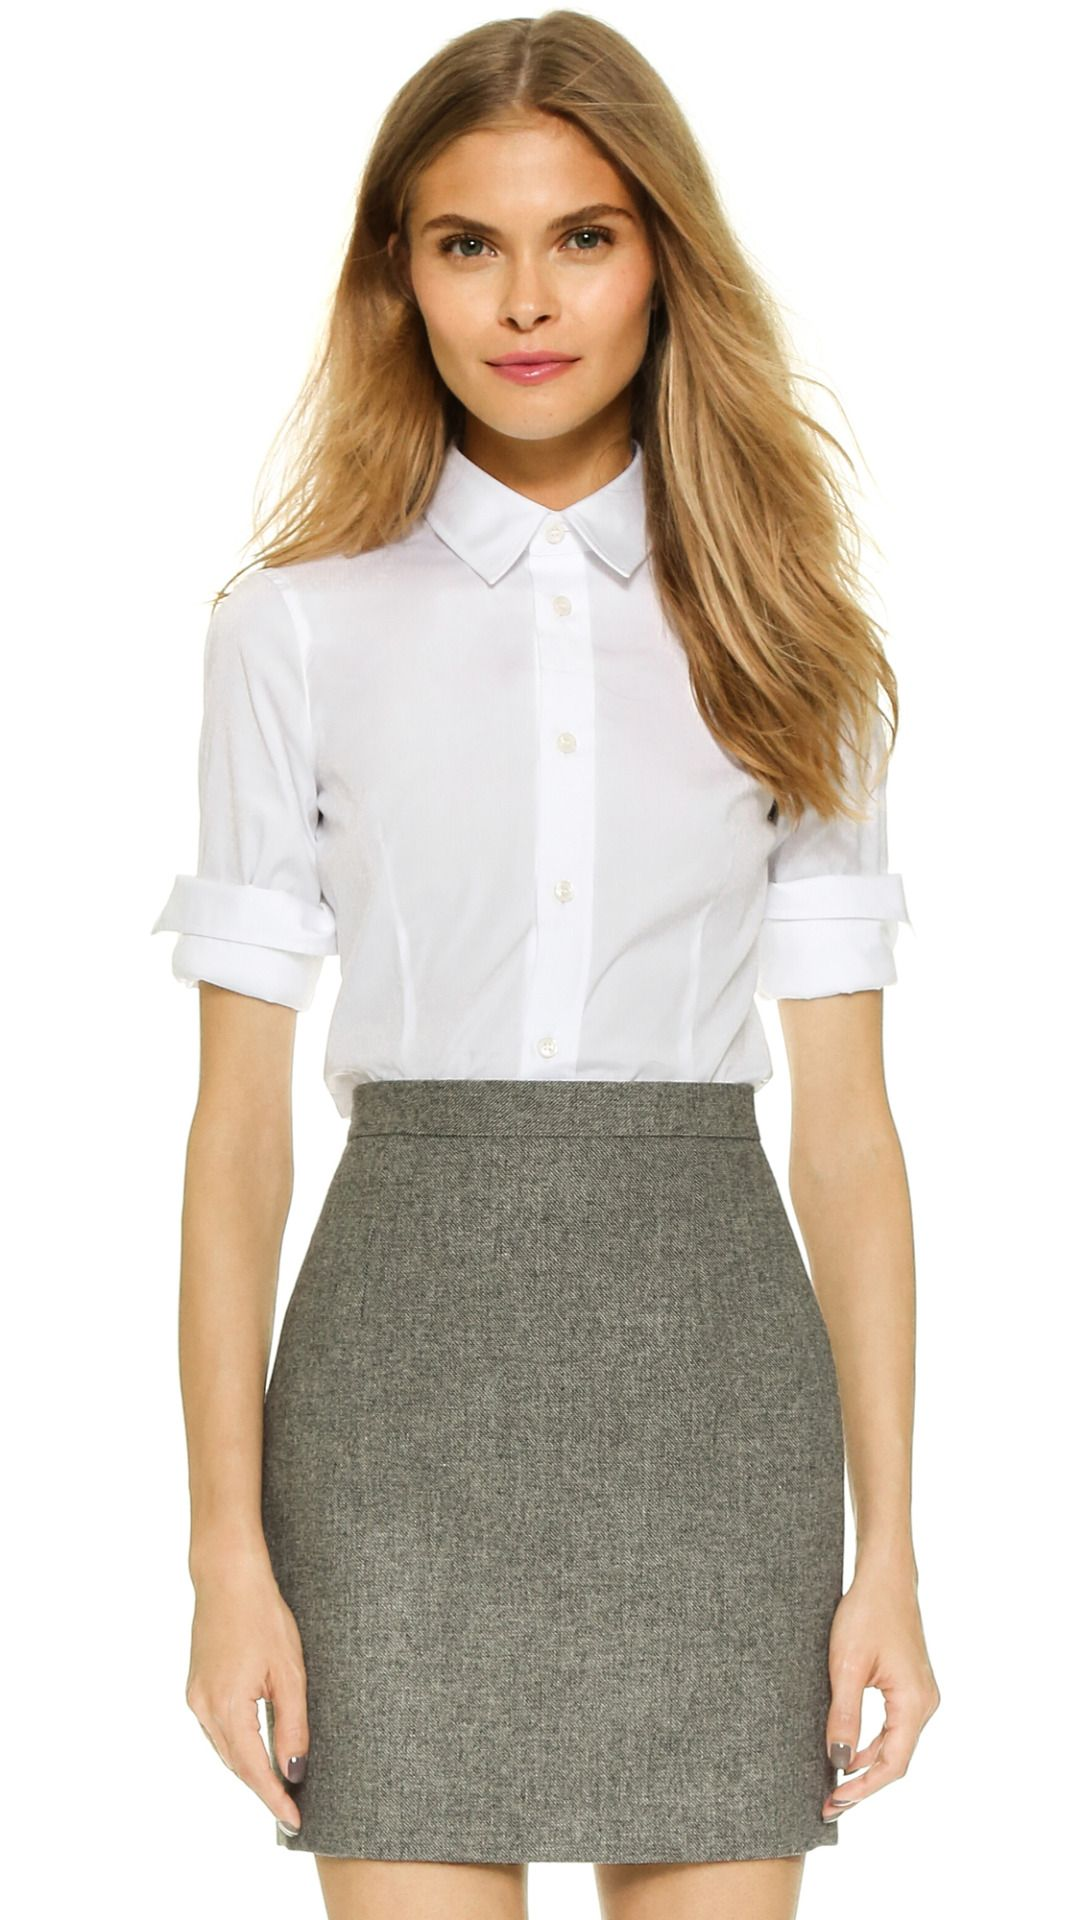 Greyship photo button up shirt womens dresses for